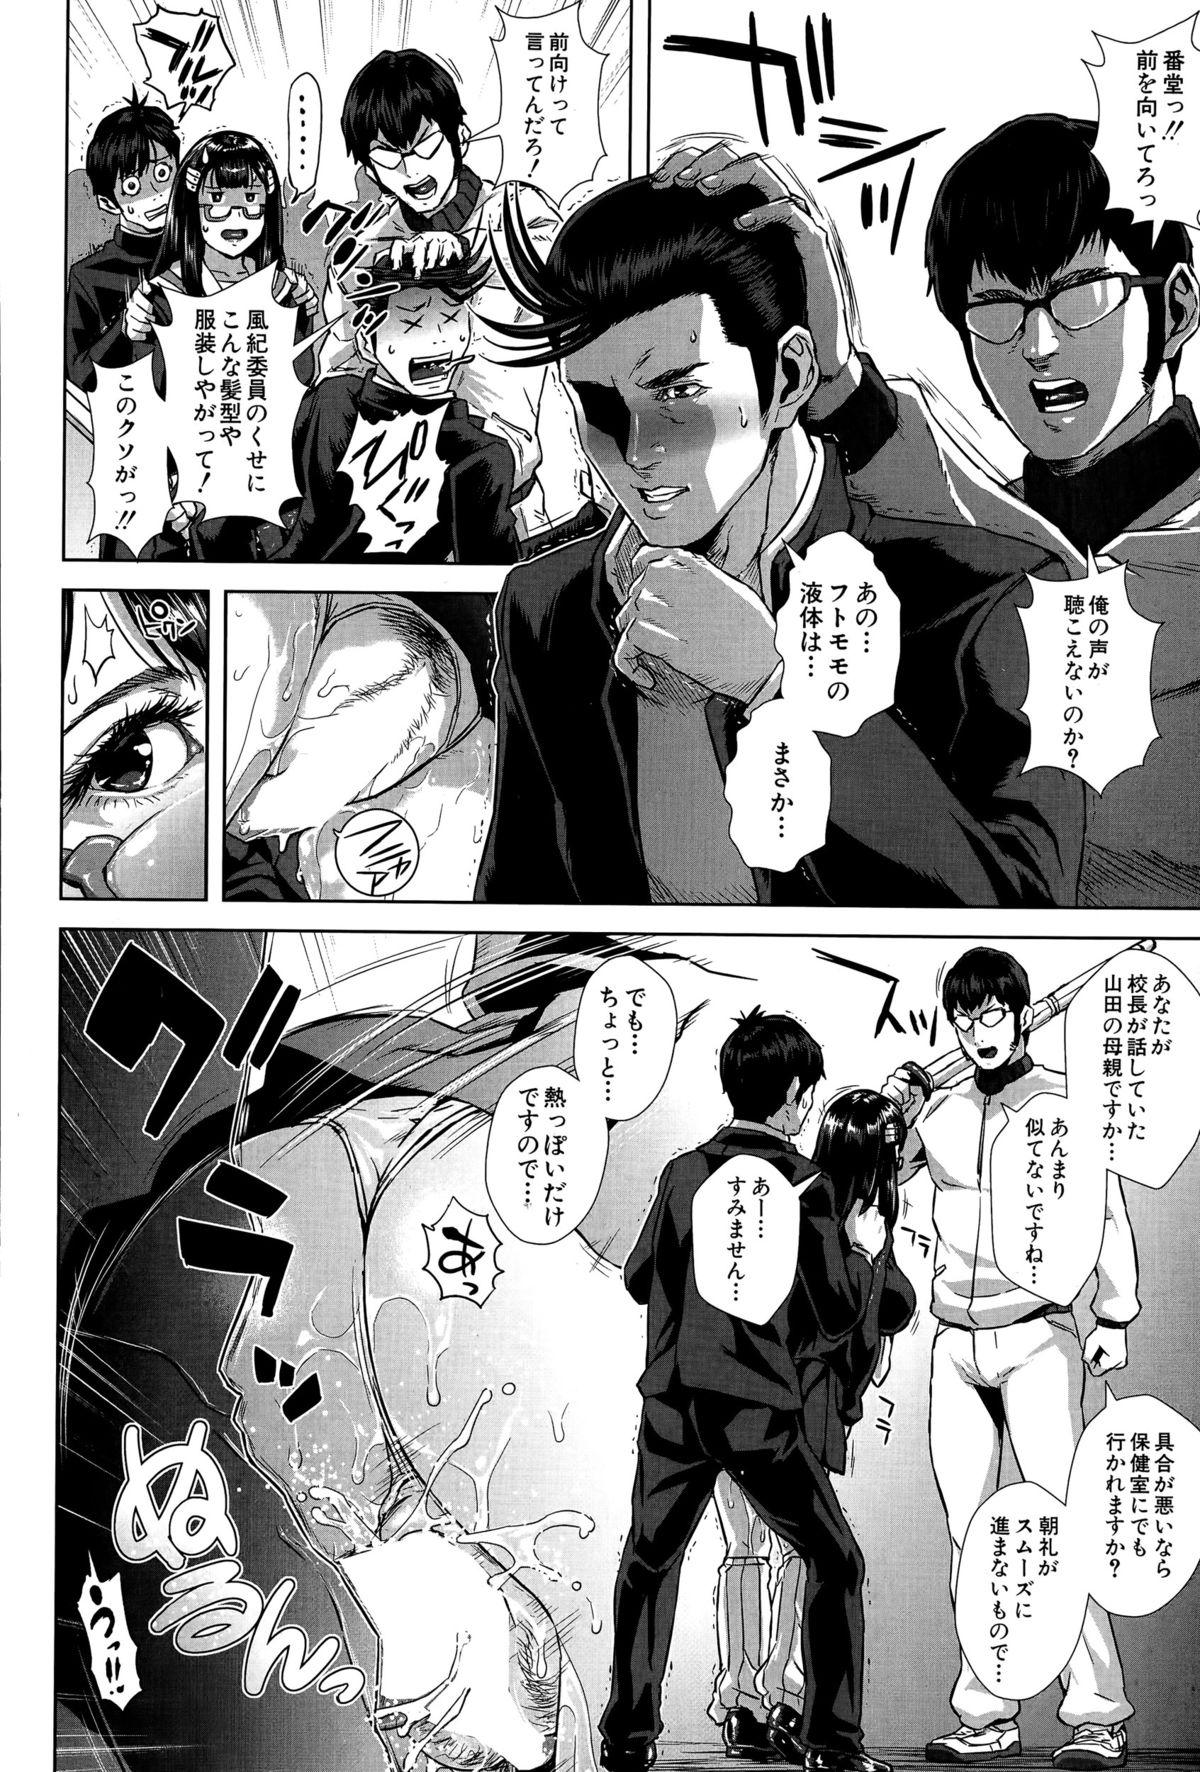 BUSTER COMIC 2015-07 147